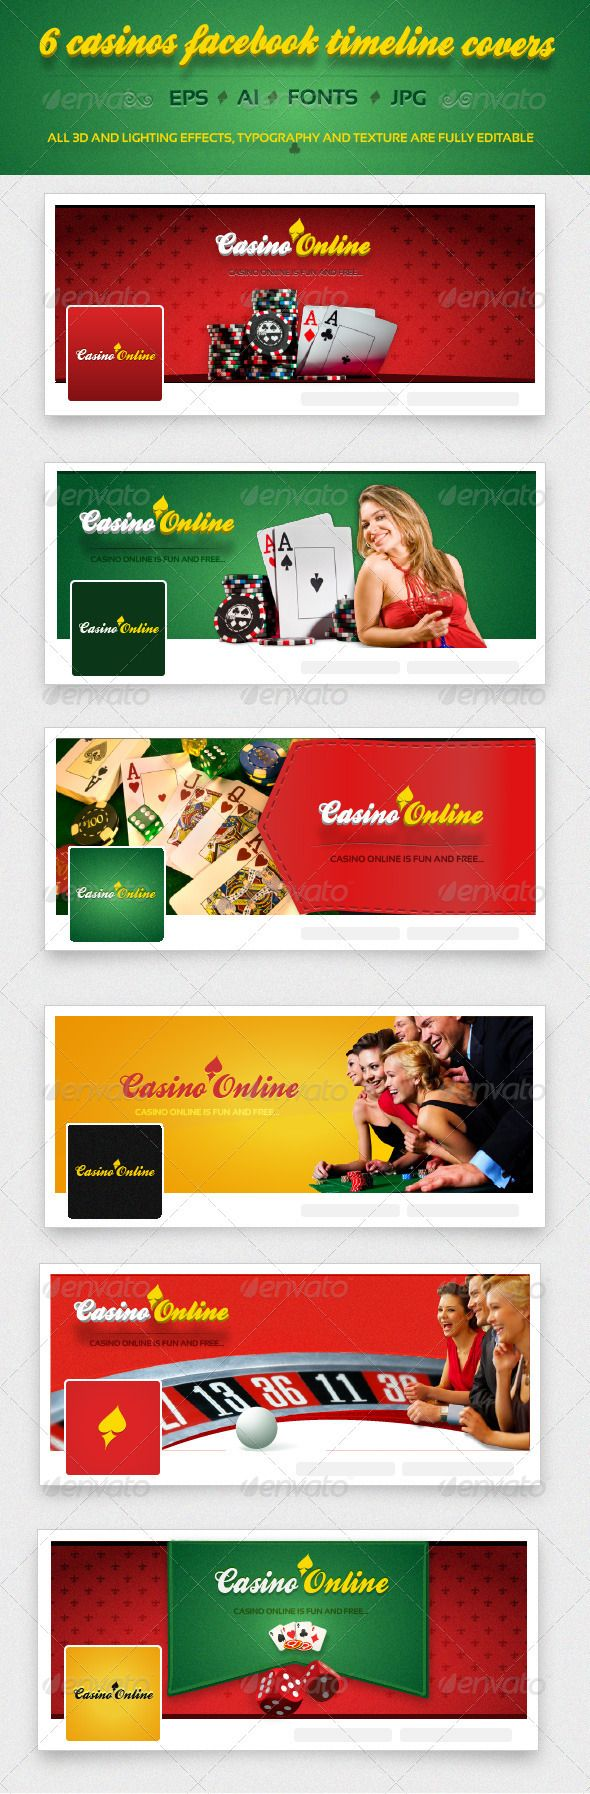 The pack includes 6 attractive casino Facebook Timeline Covers and 6 Facebook Profile Images. • Lighting effects, texture and typography is editable.